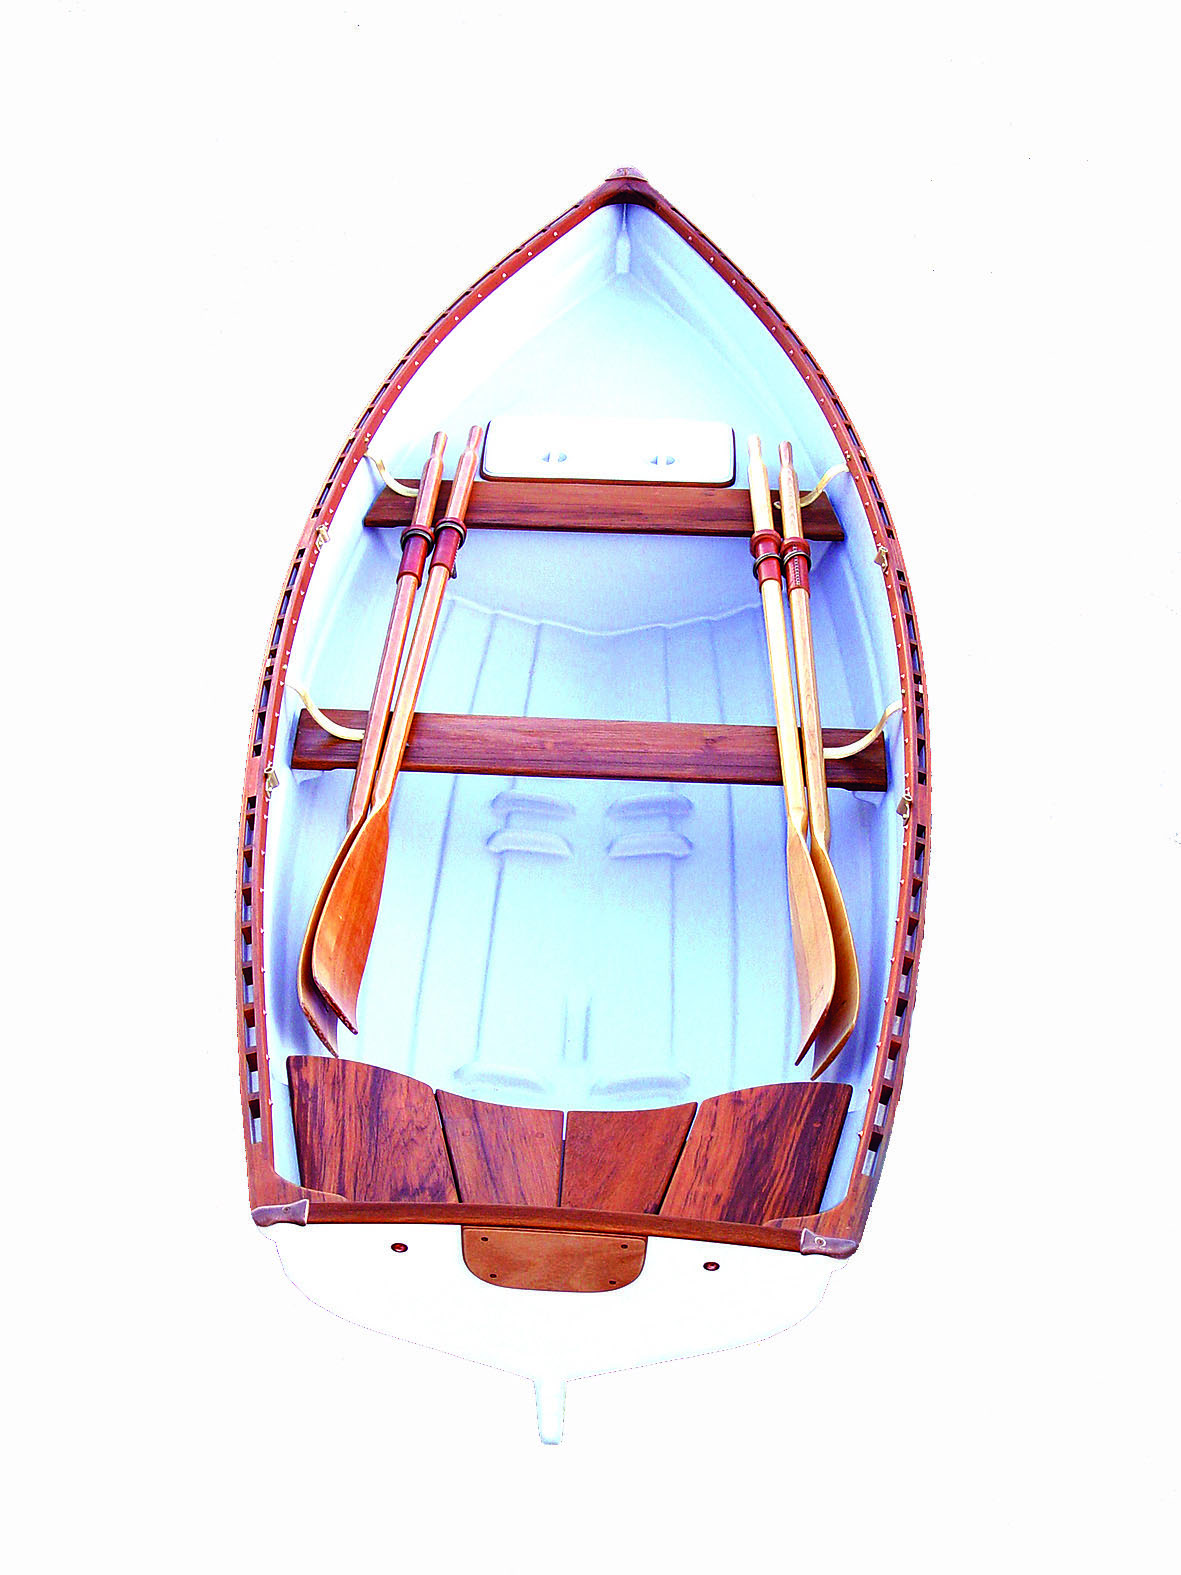 Tyee-Spirit-14-Traditional-Rowboat-with-Fixed-Seats-Whitehall-Rowing-and-Sail